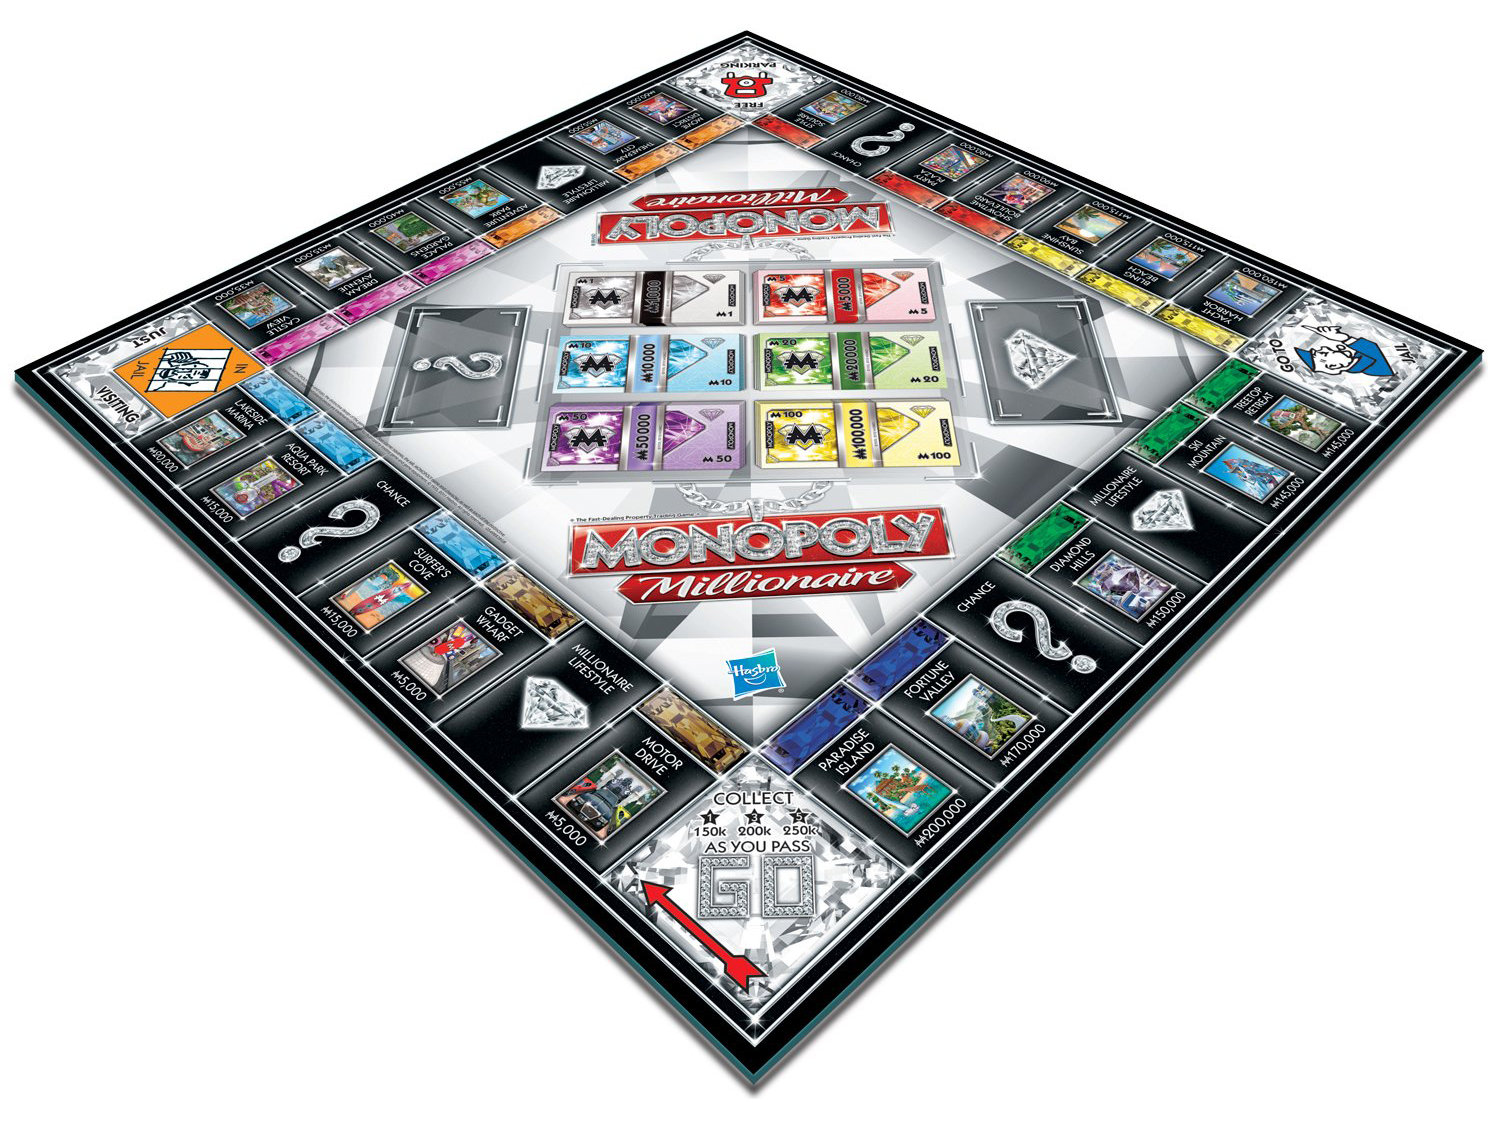 Toys And Games Com : Hasbro monopoly millionaire amazon toys games